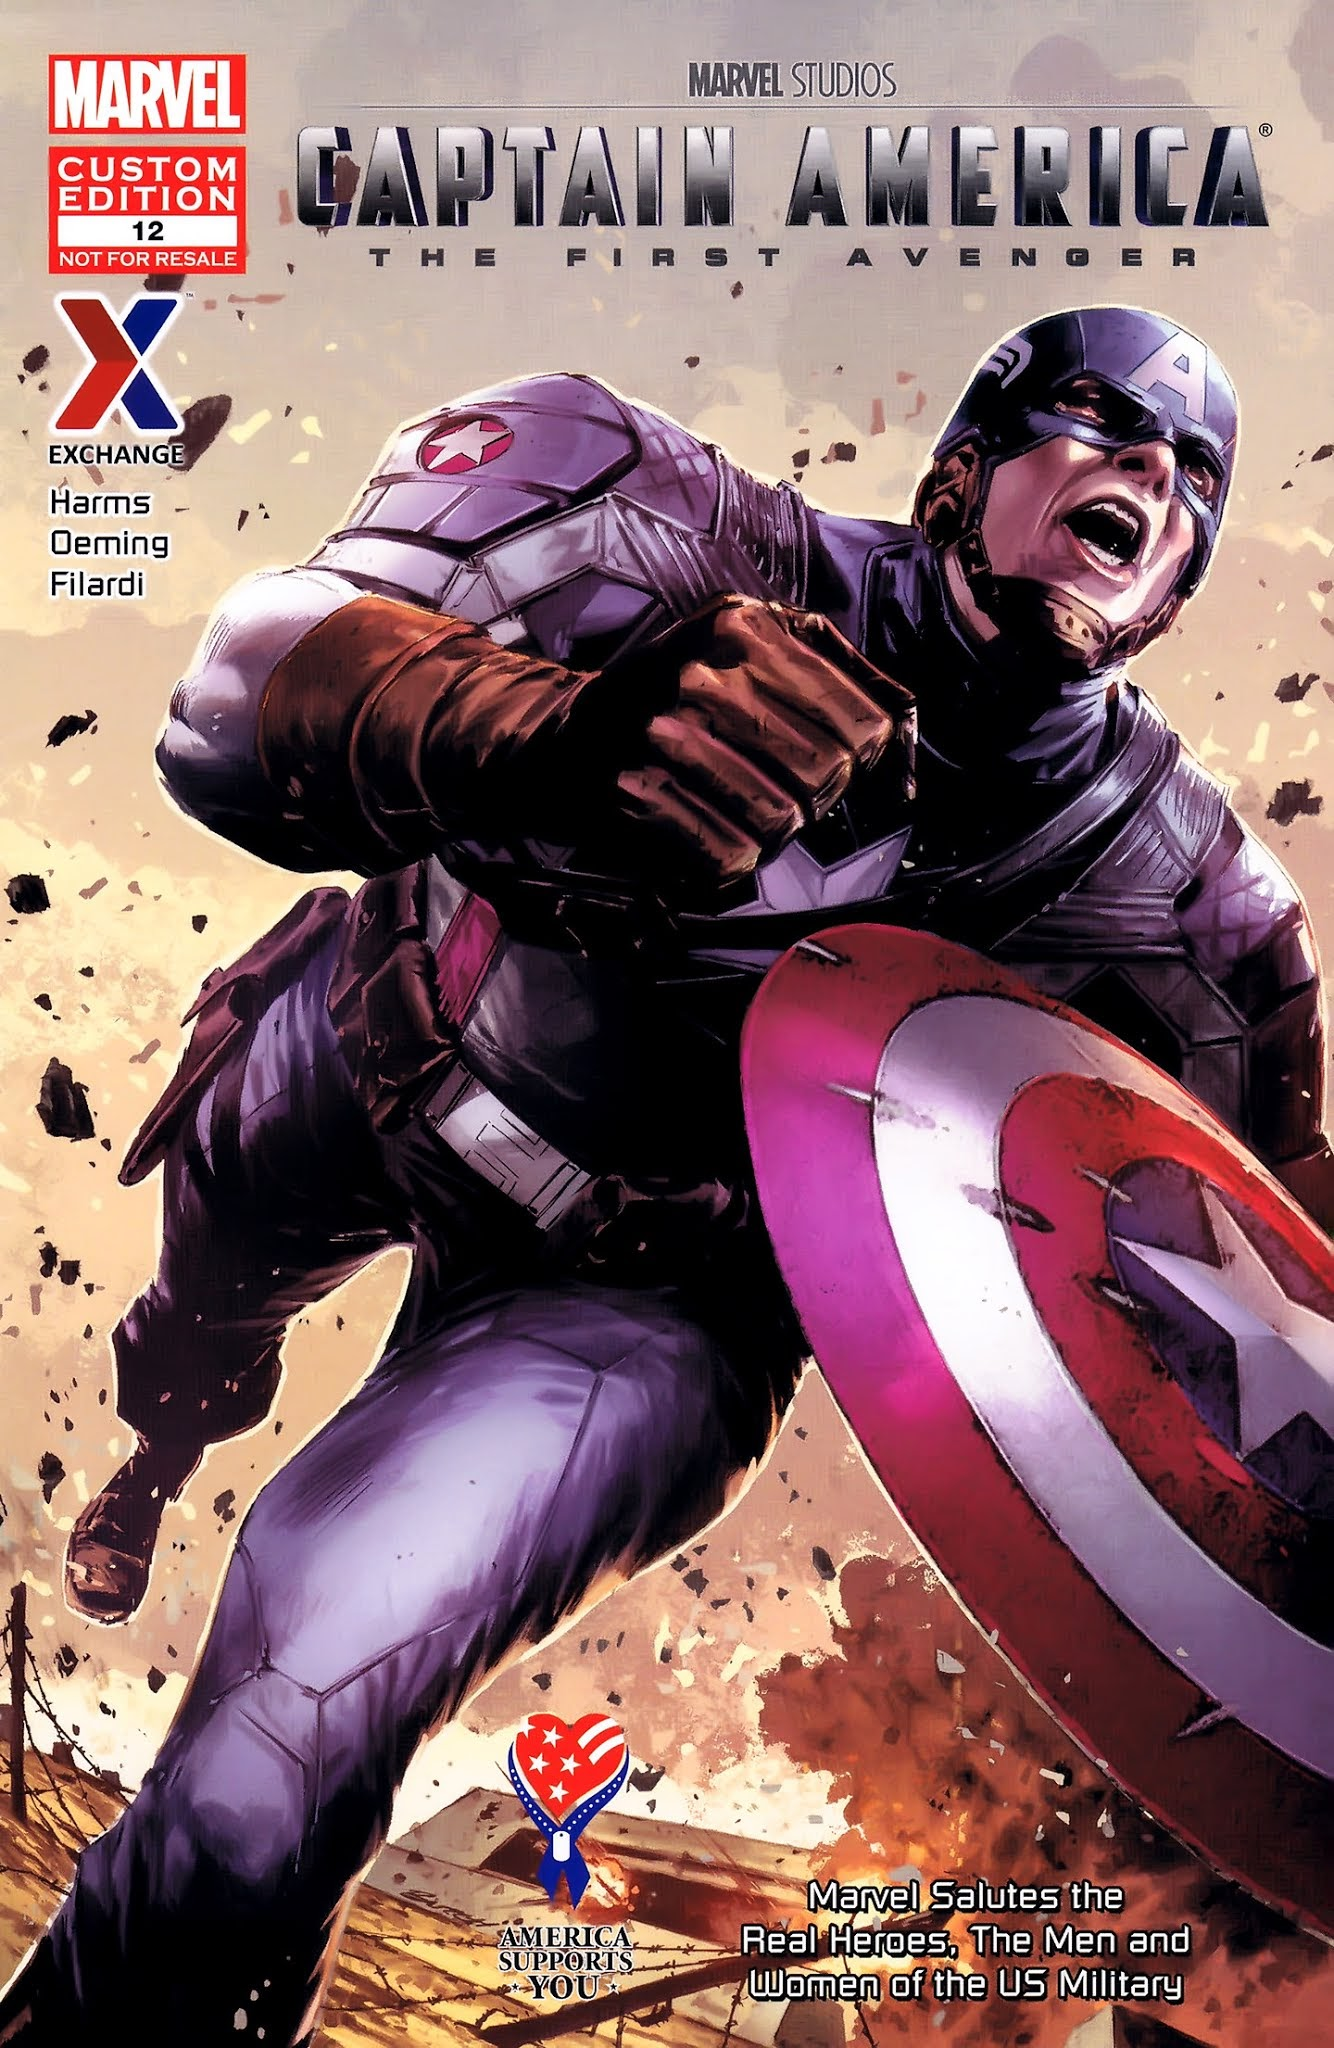 AAFES 12th Edition [Captain America: The First Avenger] Full Page 1